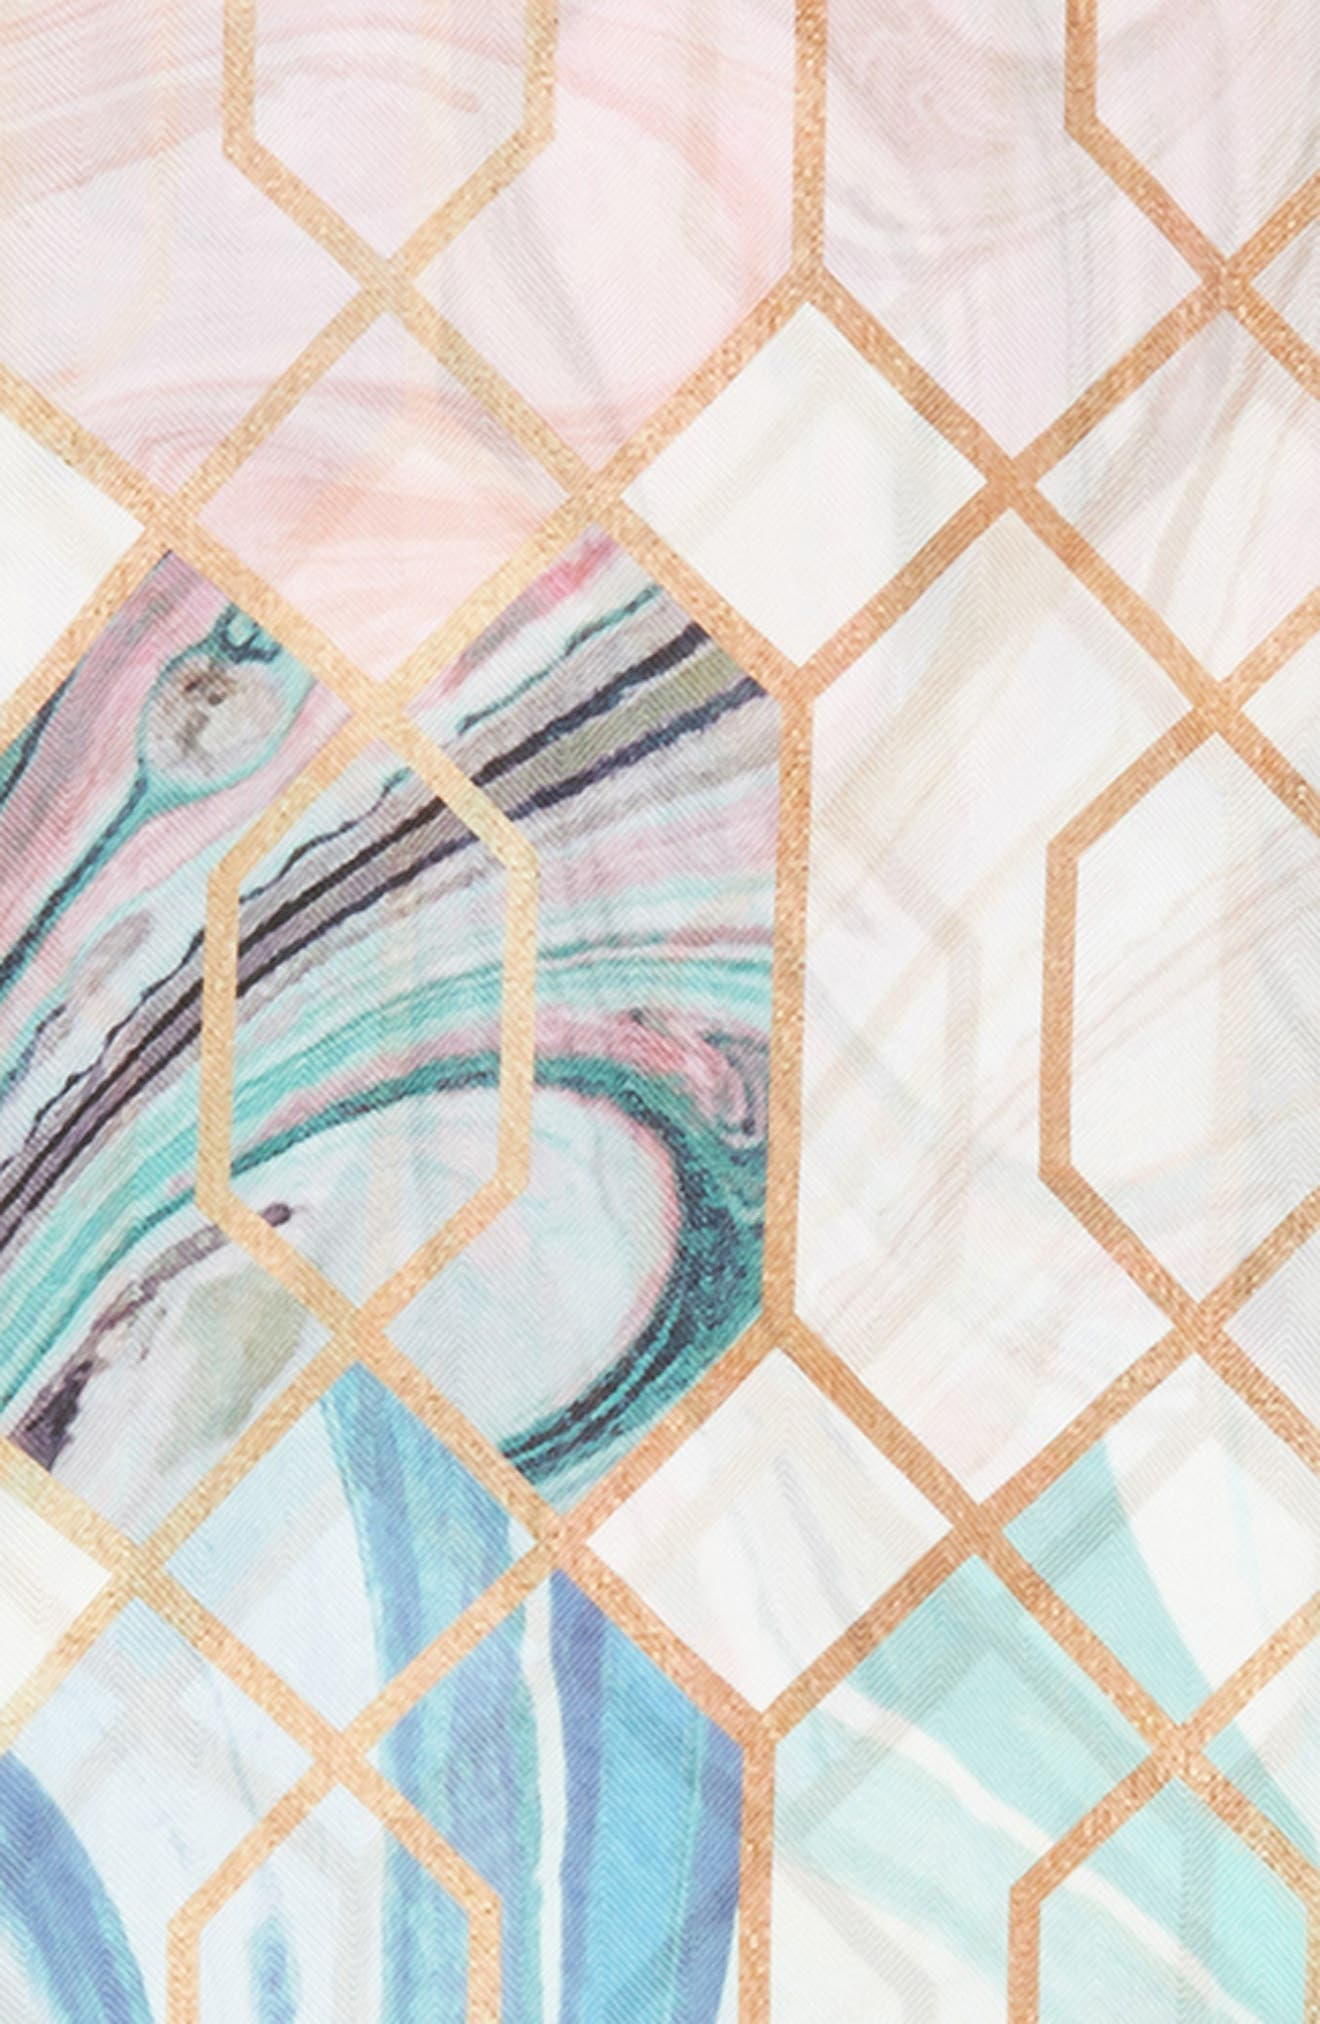 Adeelee - Sea of Clouds Silk Scarf,                             Alternate thumbnail 4, color,